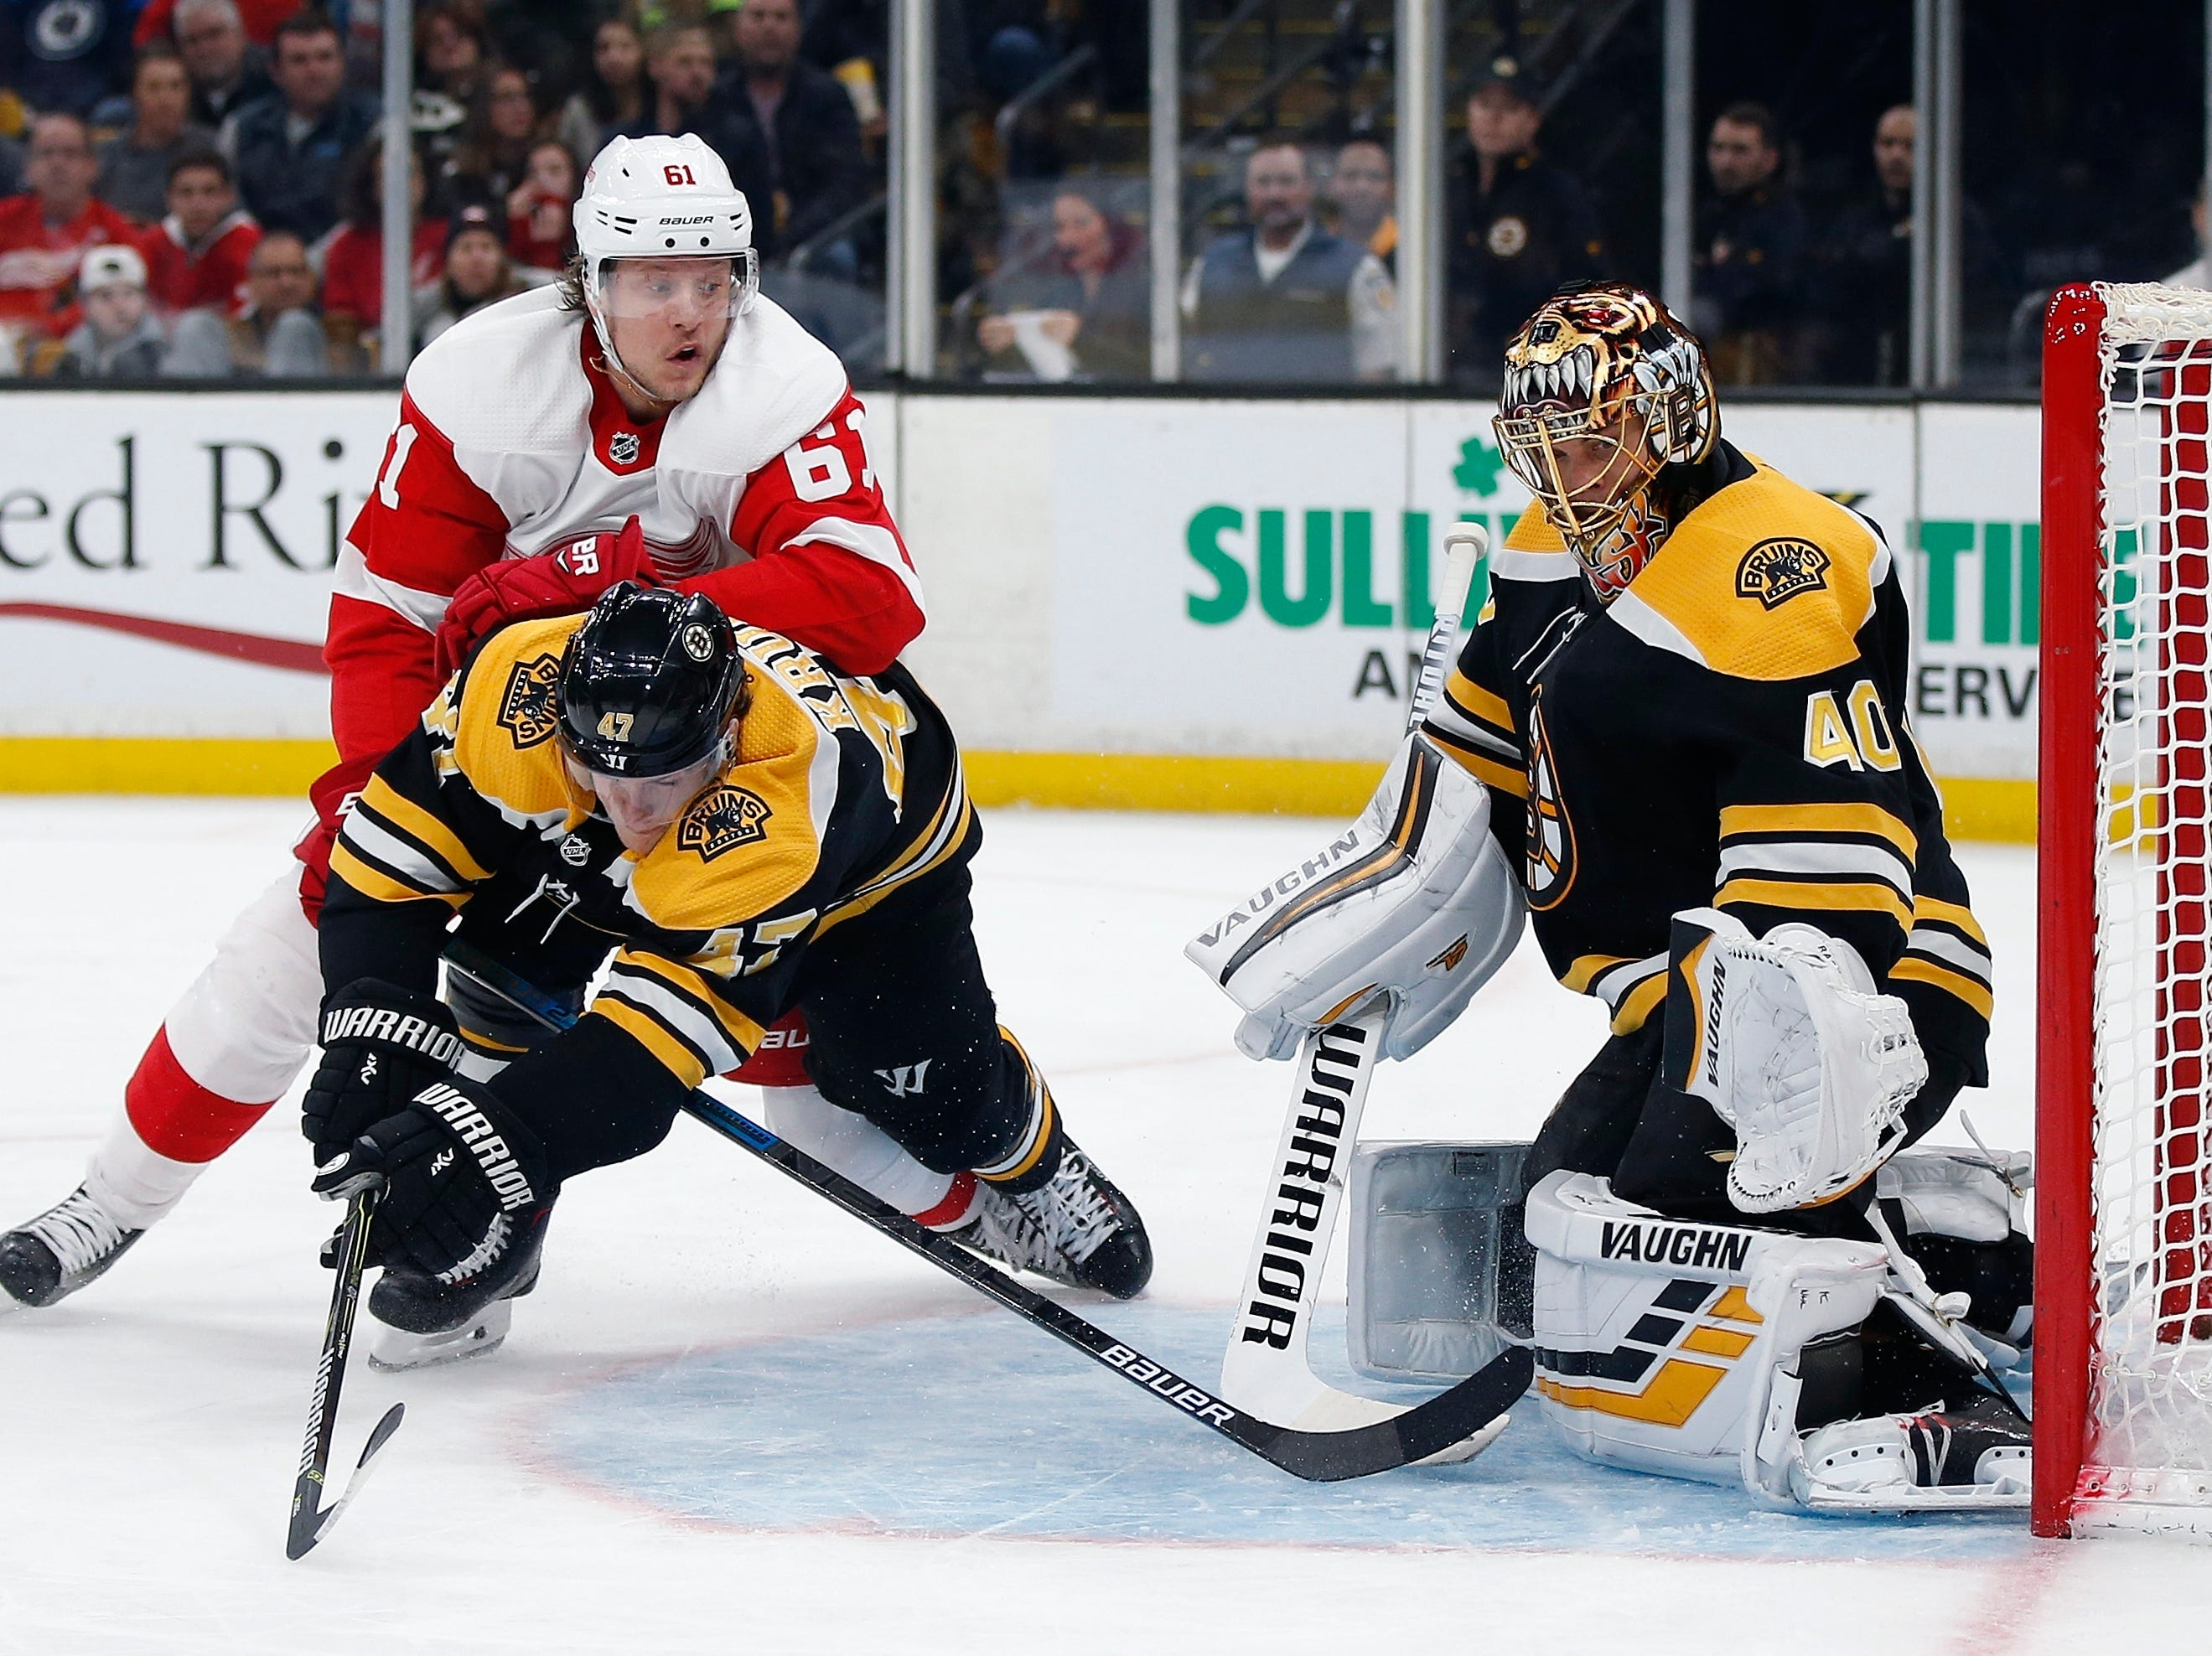 Detroit Red Wings' Jacob de la Rose (61) and Boston Bruins' Torey Krug (47) battle for the puck in front of Tuukka Rask (40) during the third period.